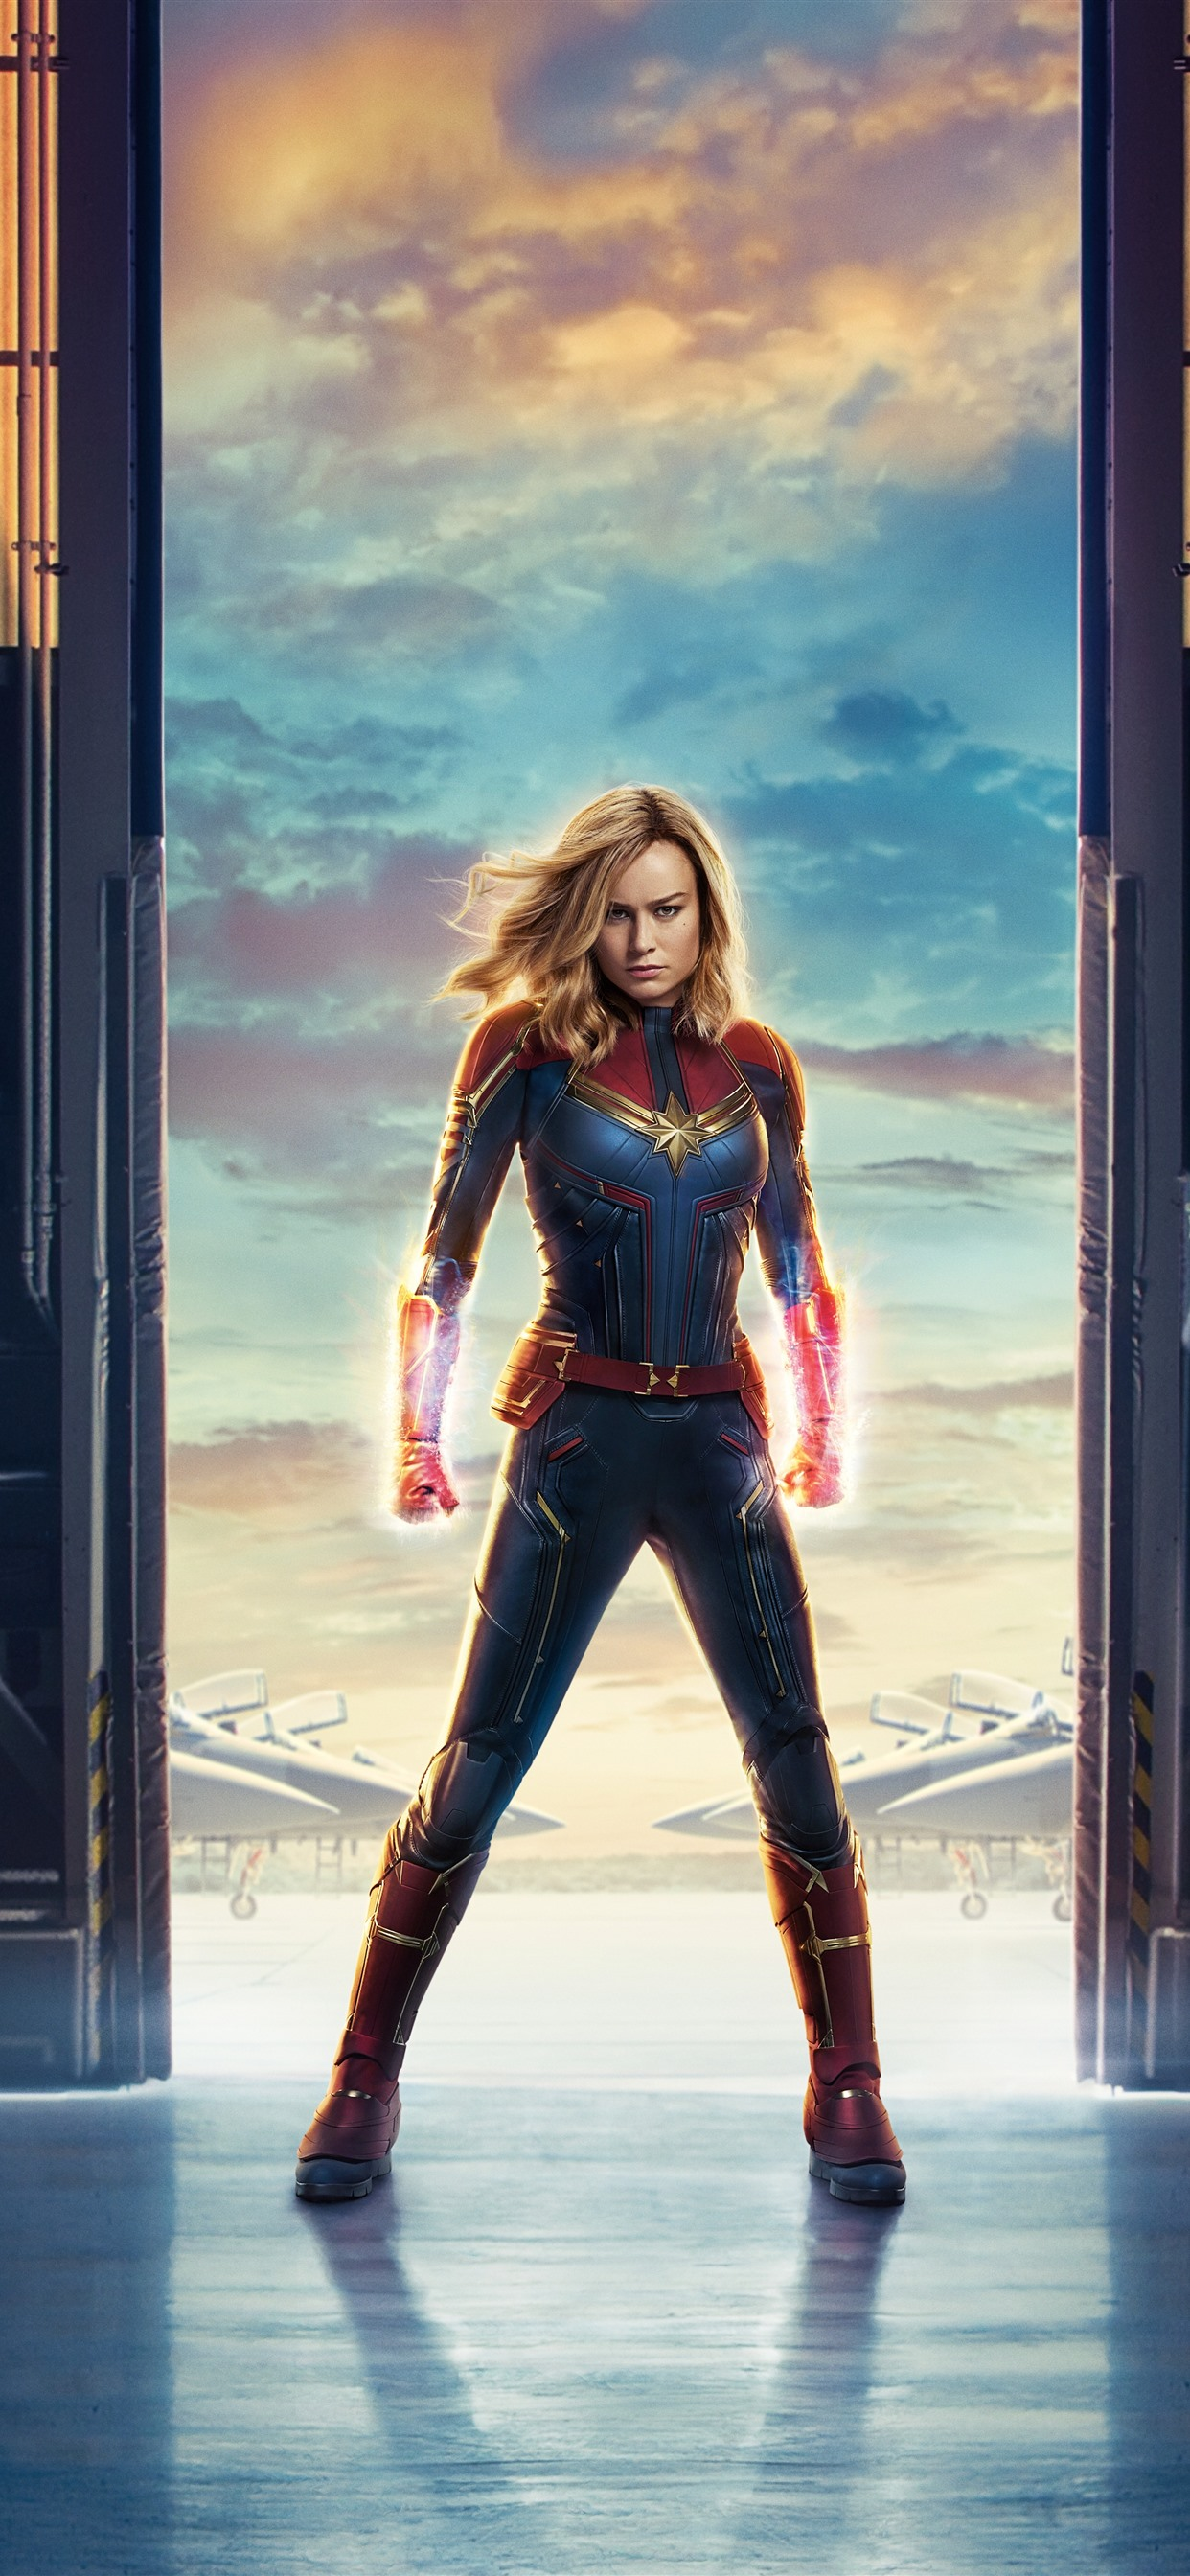 Captain Marvel Brie Larson Marvel Movie 2019 1242x2688 Iphone 11 Pro Xs Max Wallpaper Background Picture Image